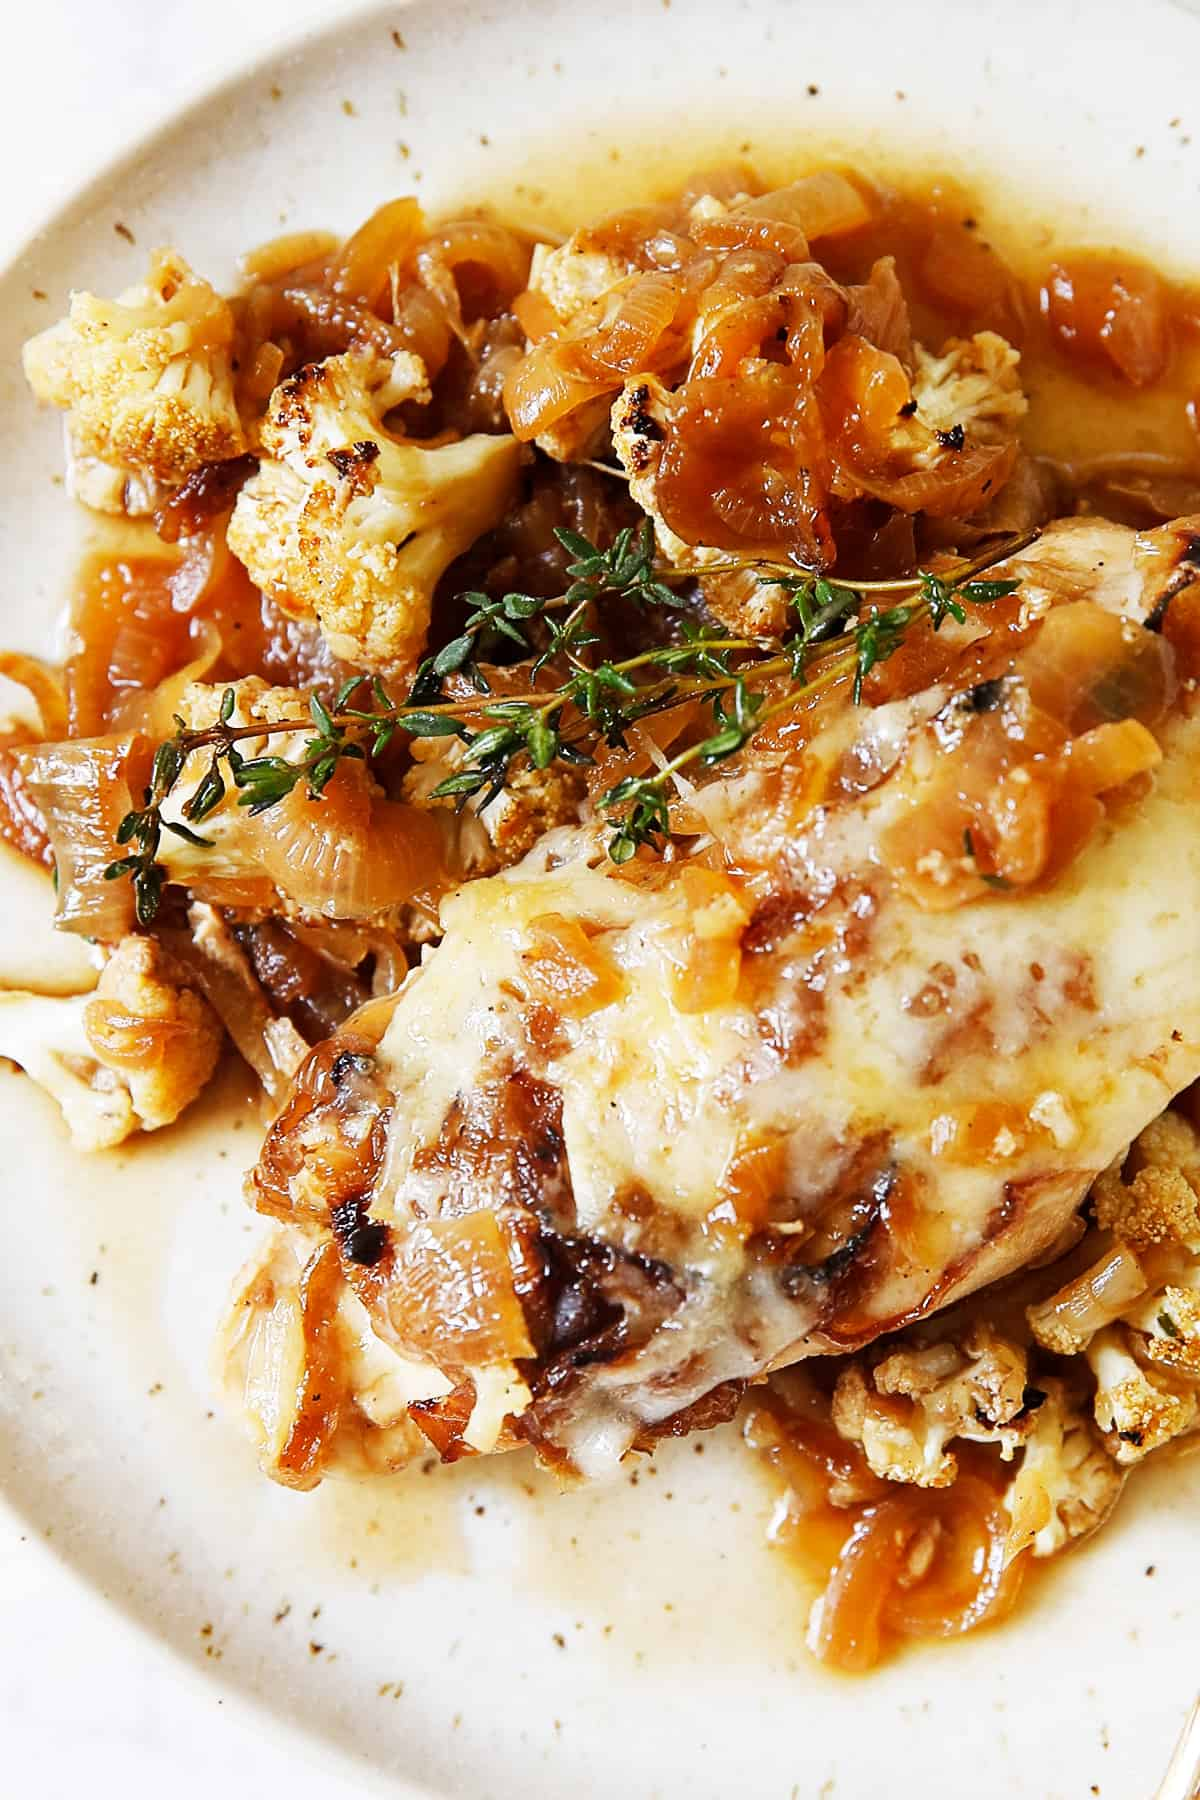 French onion soup chicken casserole on a plate